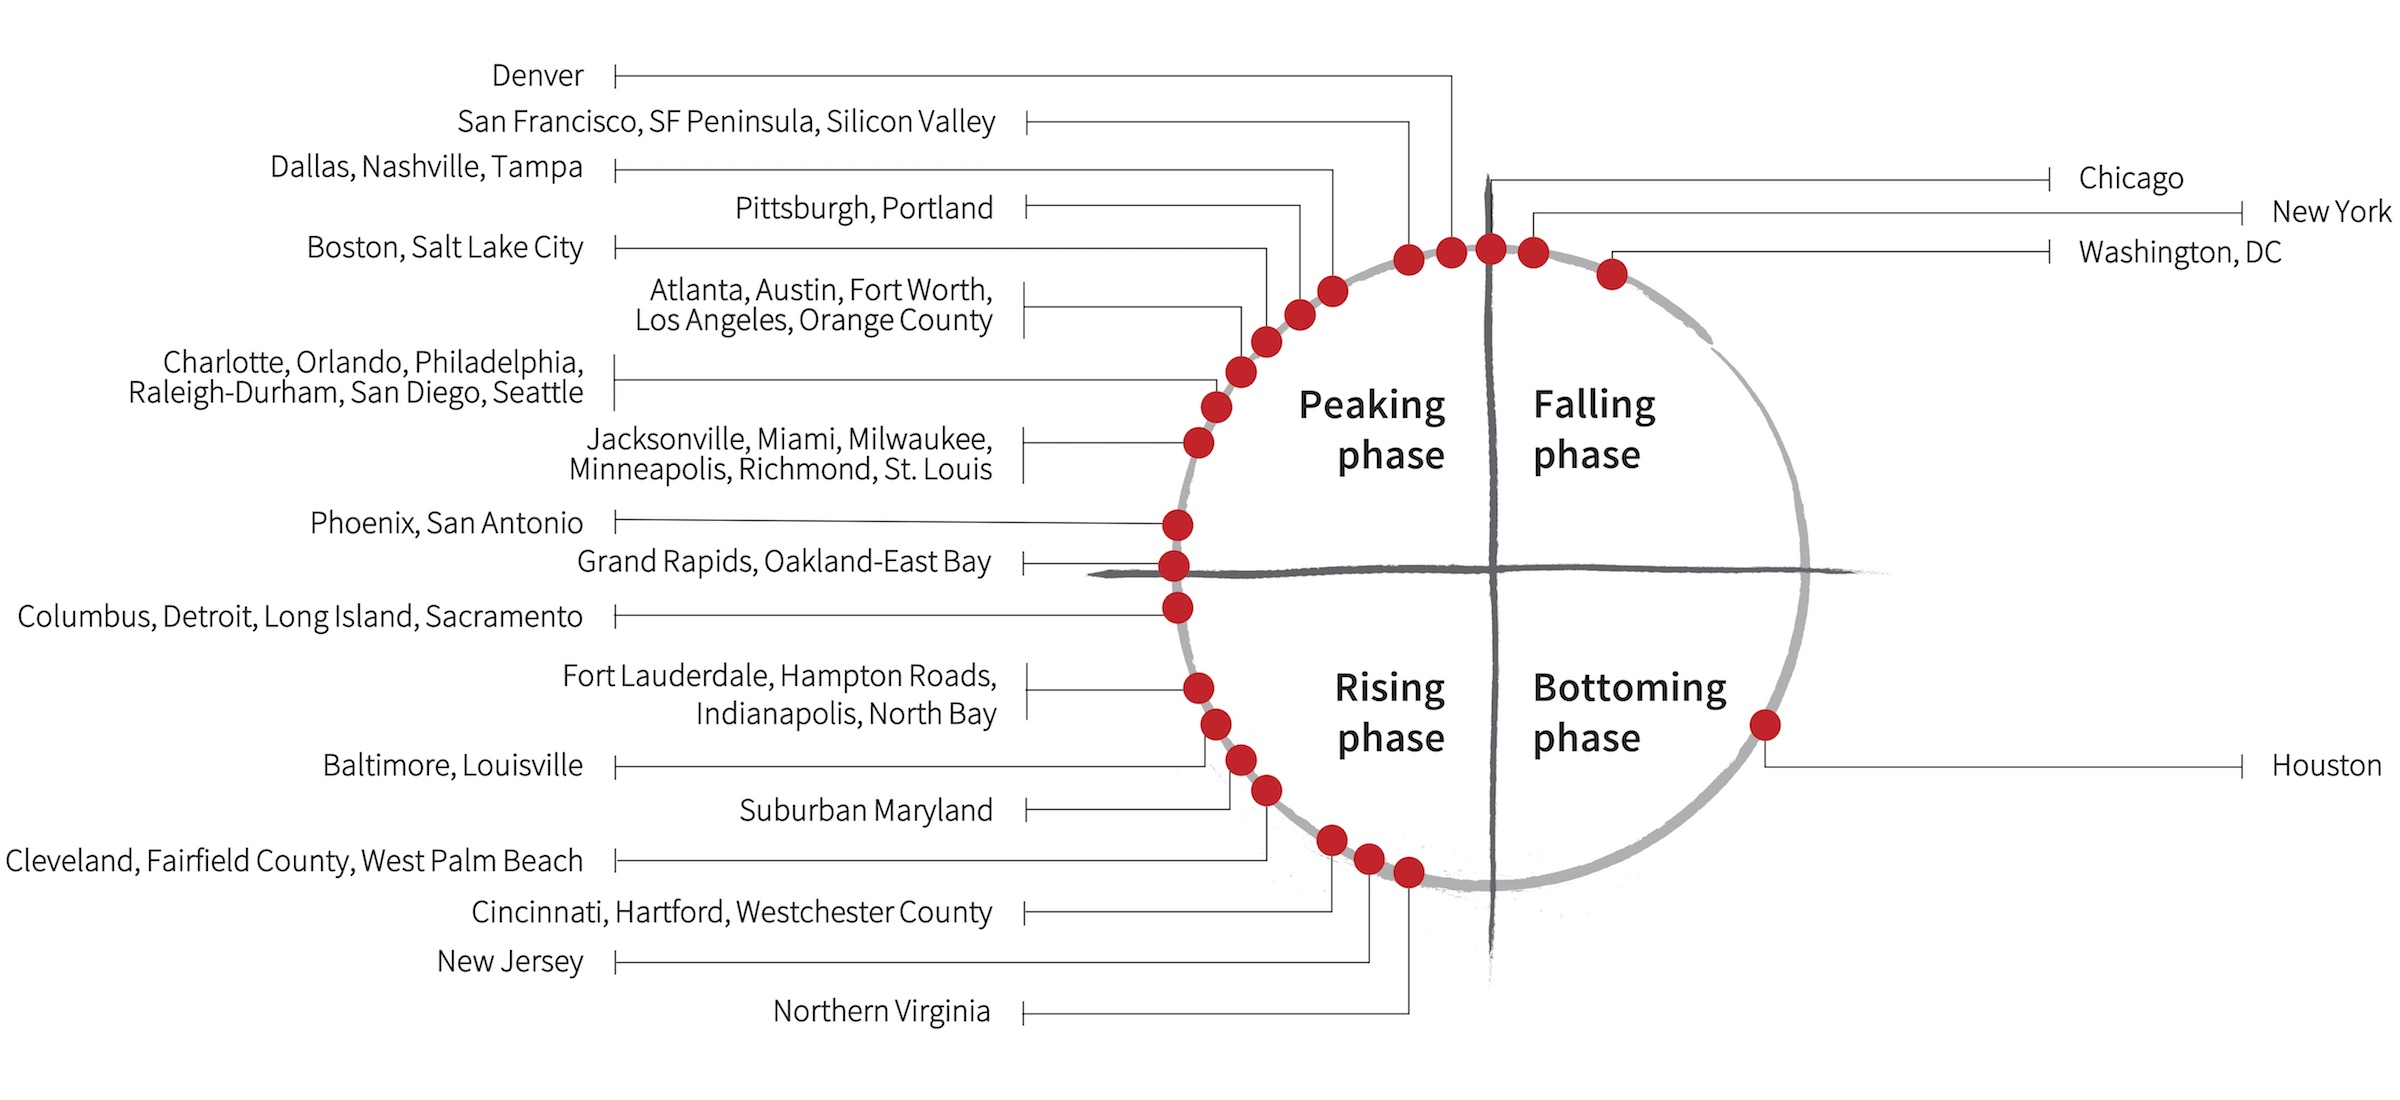 JLL Office Outlook clock (image)